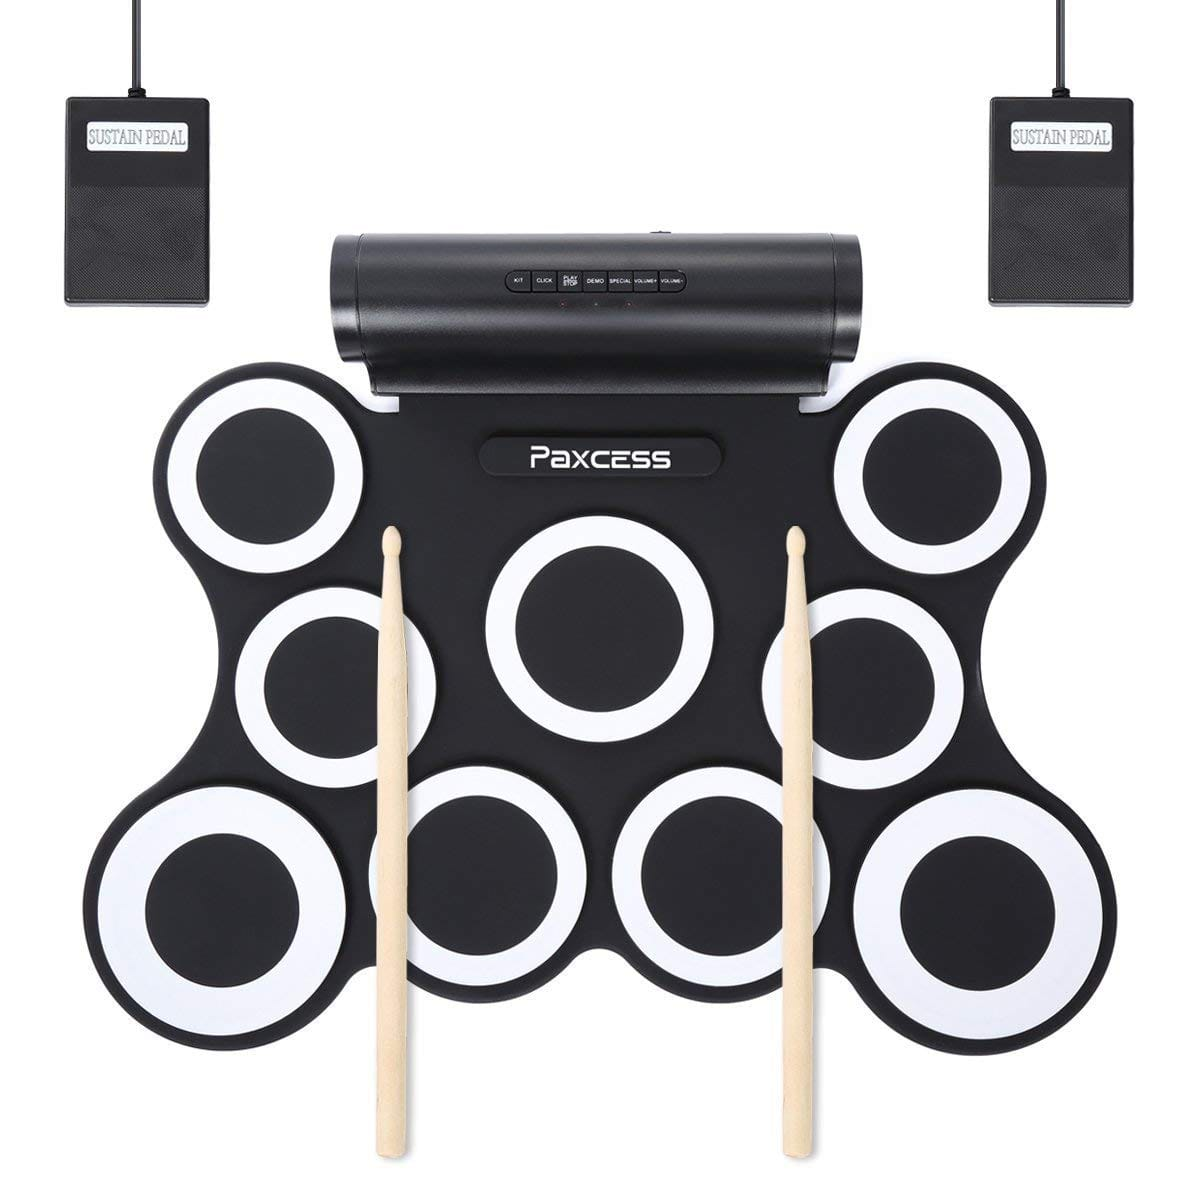 Electric Drum Set, Upgraded Roll Up Drum 9 Practice Pads Electronic Drum Pad Set with Headphone Jack, Built in Battery & Speaker, Drum Sticks and Pedals Portable Drum Kit $47.99